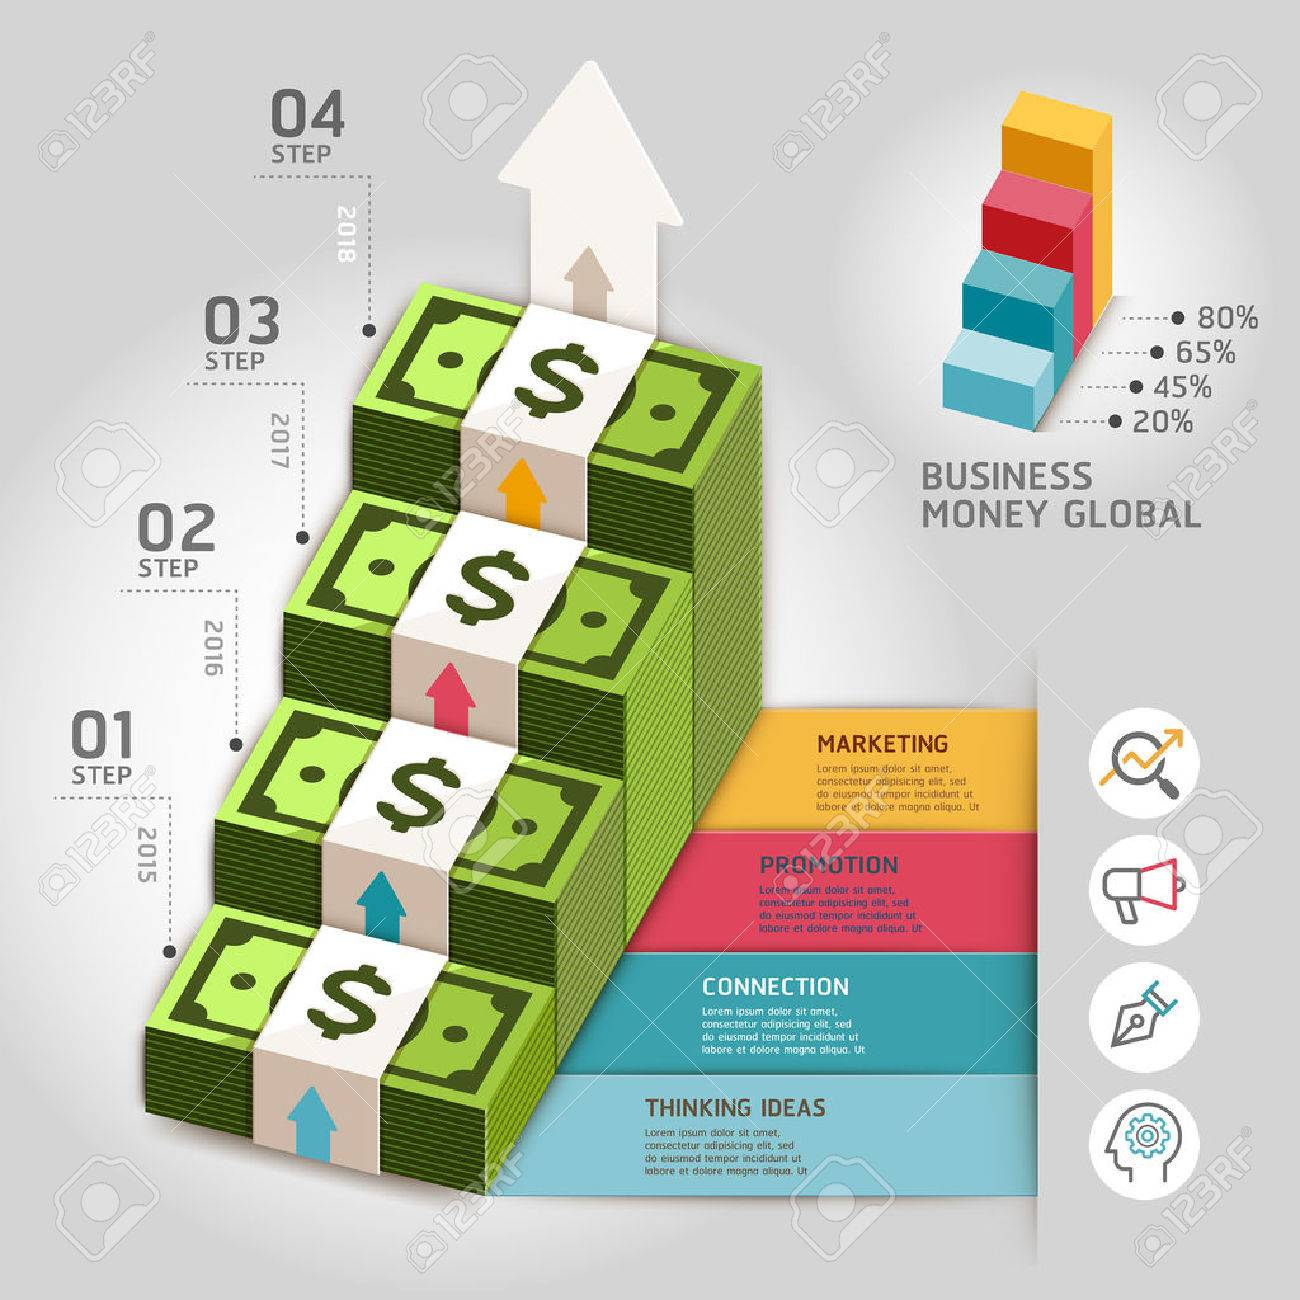 business money global arrow staircase template illustration